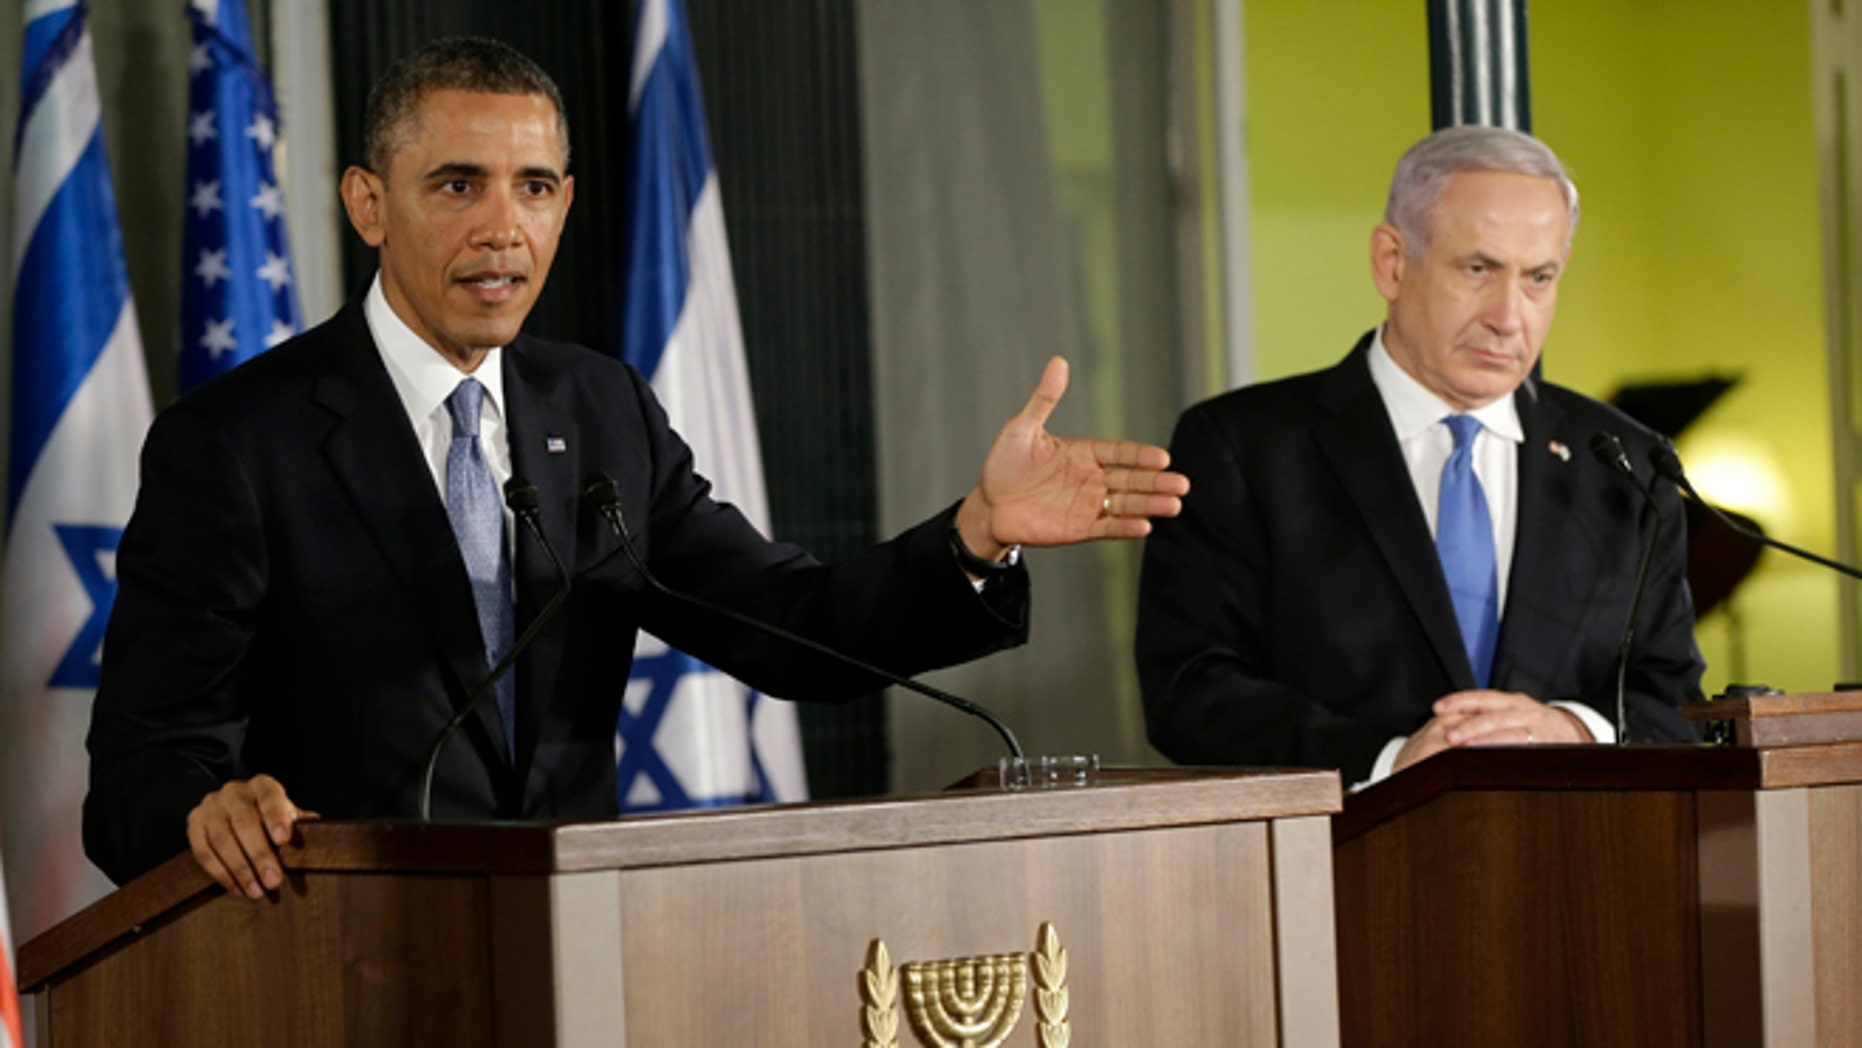 March 20, 2013: President Obama, accompanied by Israeli Prime Minister Benjamin Netanyahu, gestures as he speaks during their joint news conference in Jerusalem, Israel.